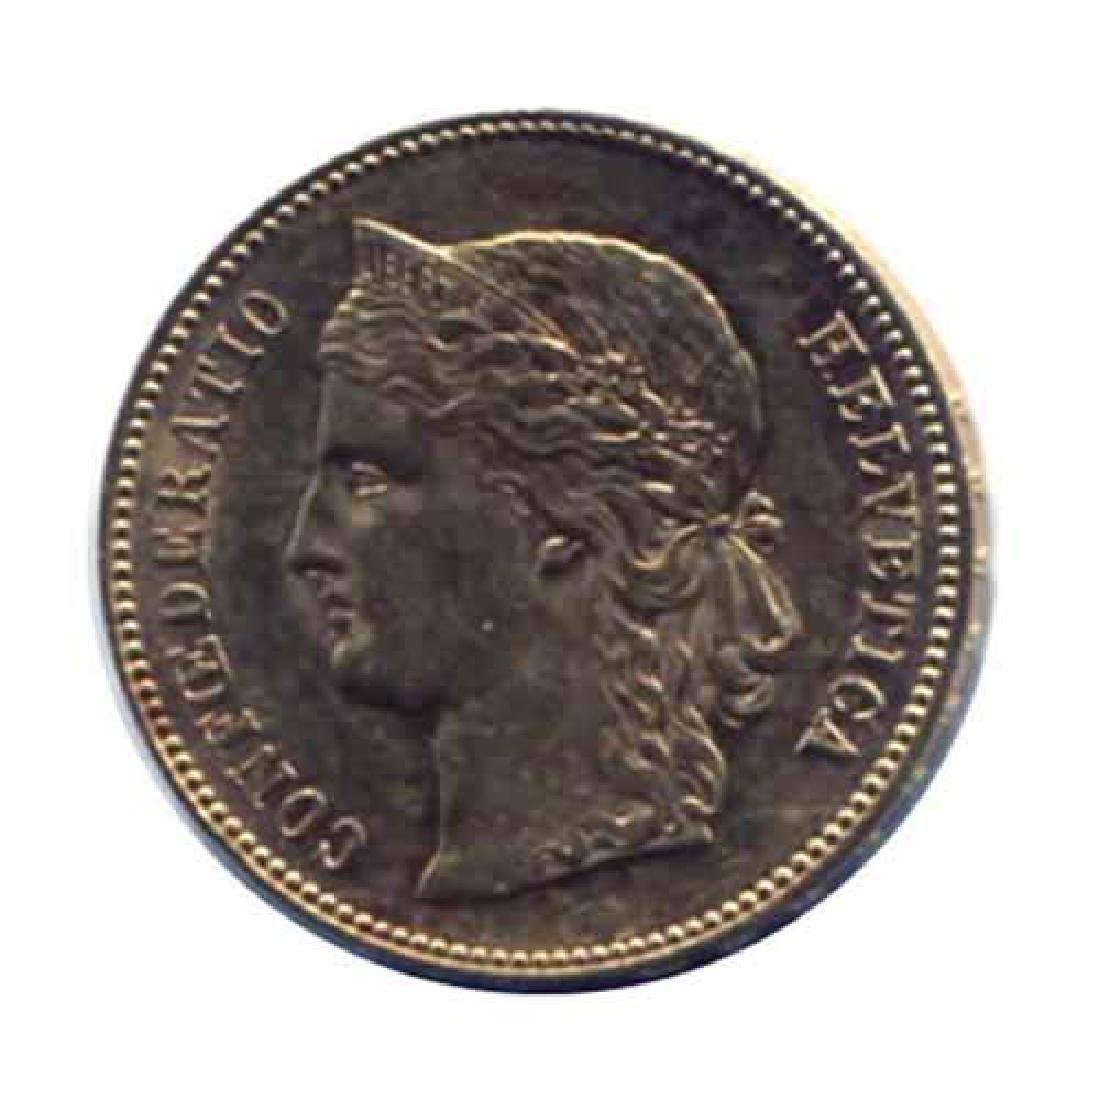 Switzerland 20 francs gold 1886-1896